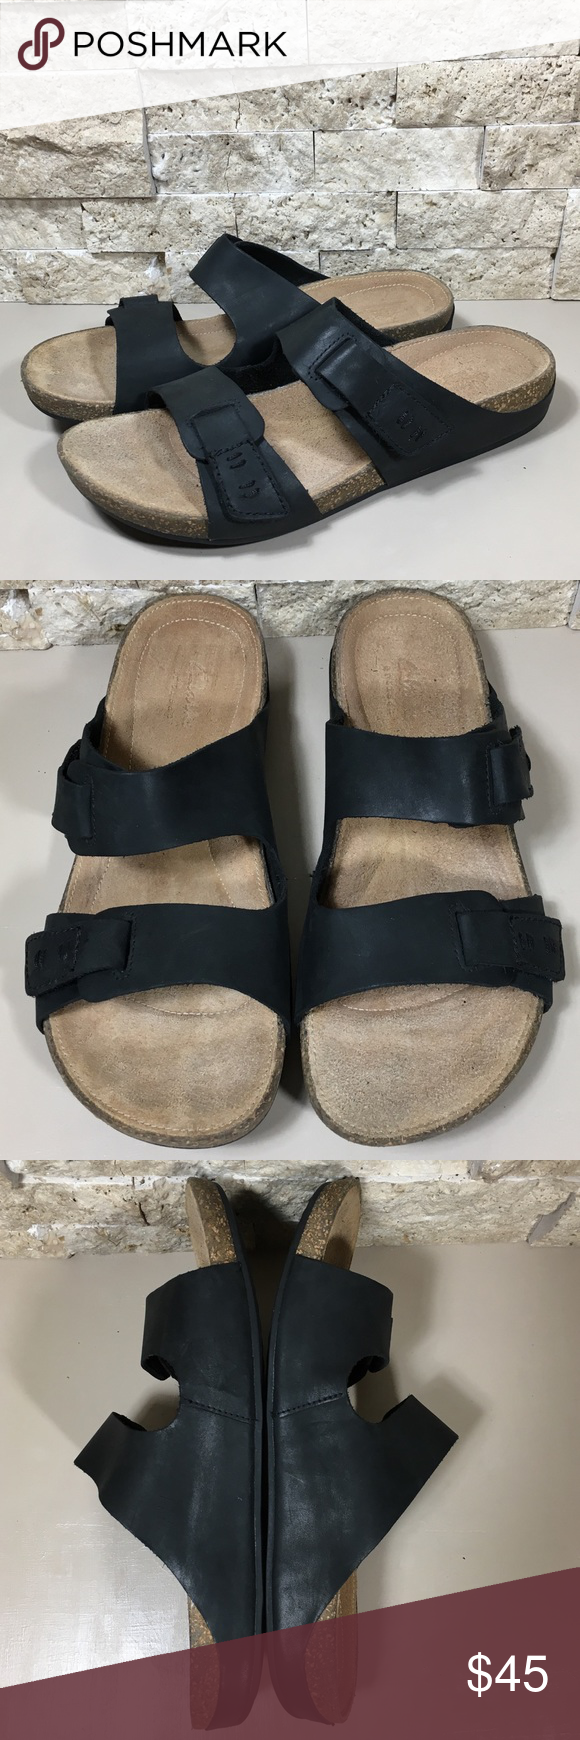 9dee745c5cf Clarks Sandal Black Leather Slip On Perri Island Clarks Artisan Perri Island  sandal black nubuck leather slip on mule slide sandals.